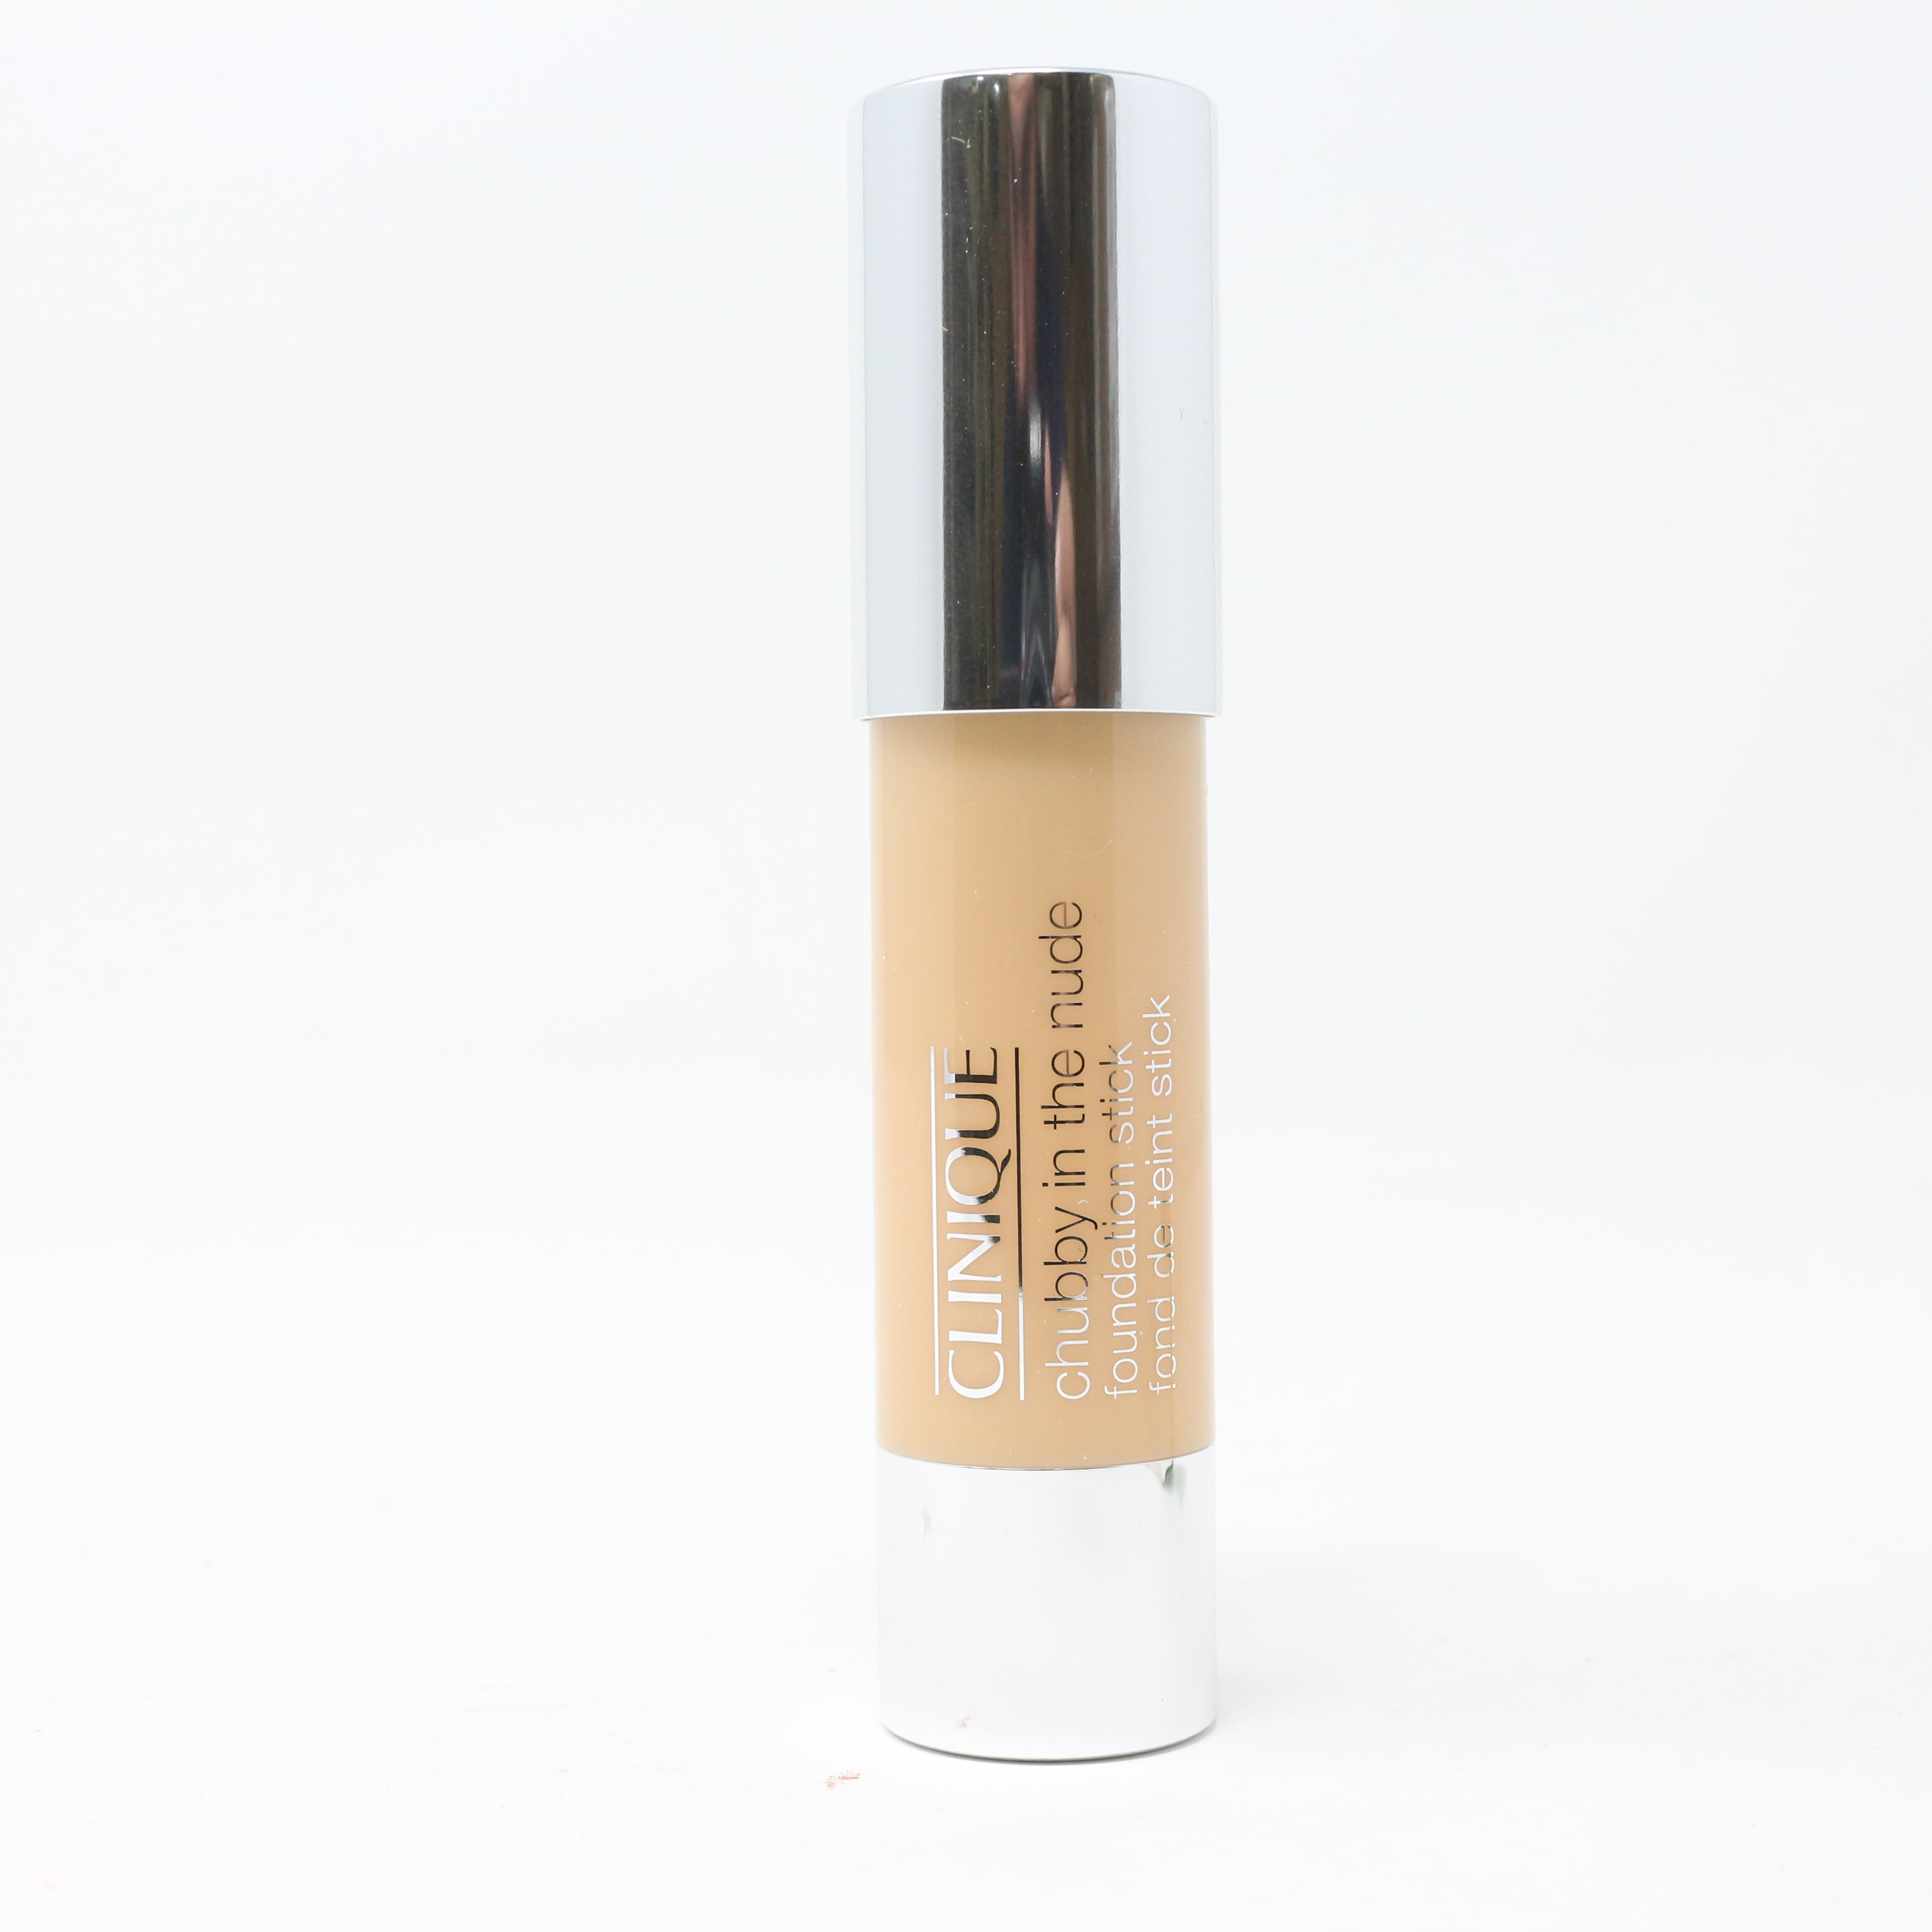 Review, Swatches: Clinique Chubby in the Nude Foundation